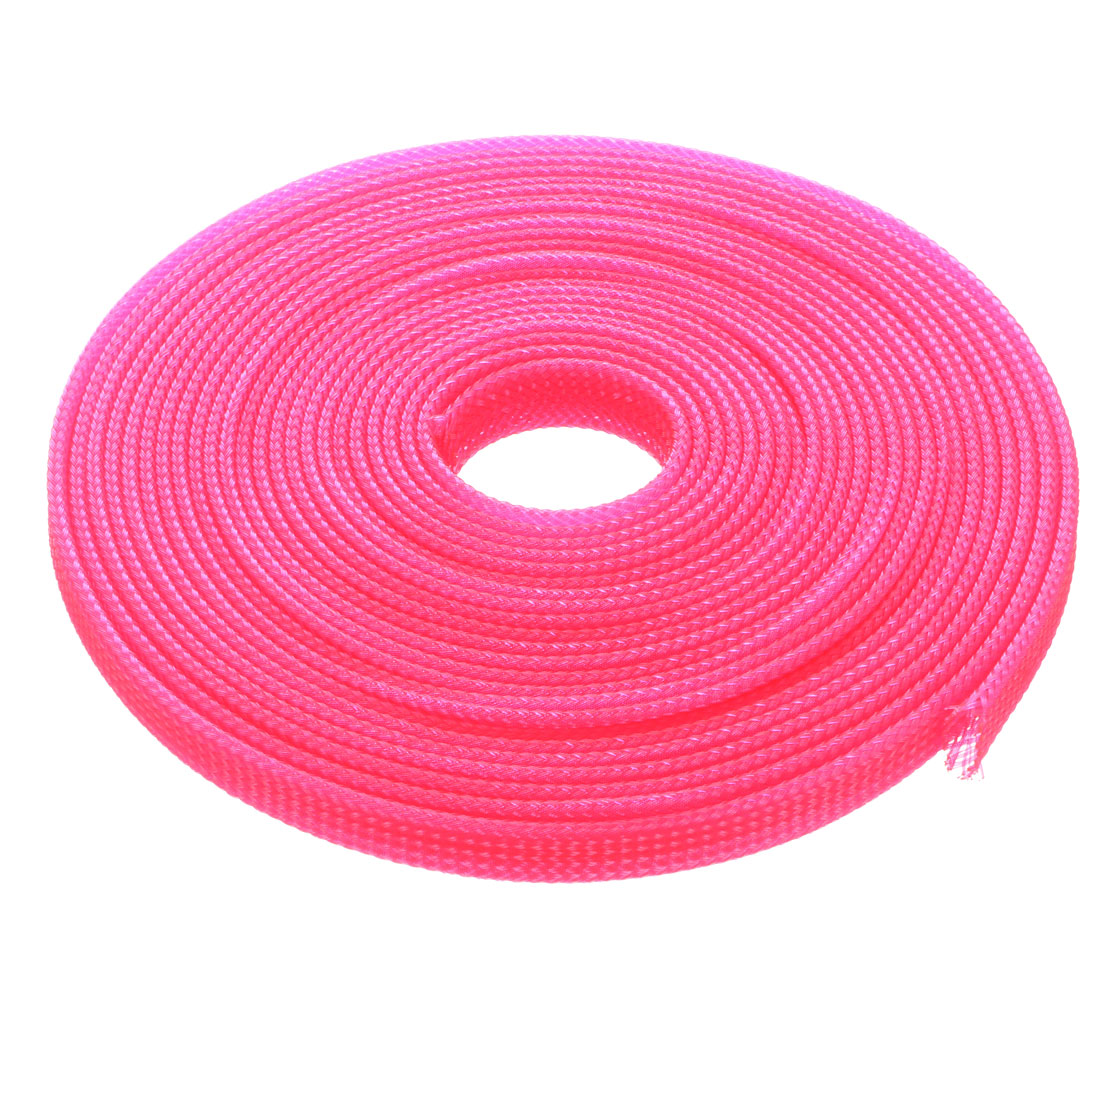 8mm Dia Tight Braided PET Expandable Sleeving Cable Wire Wrap Sheath Pink 5M